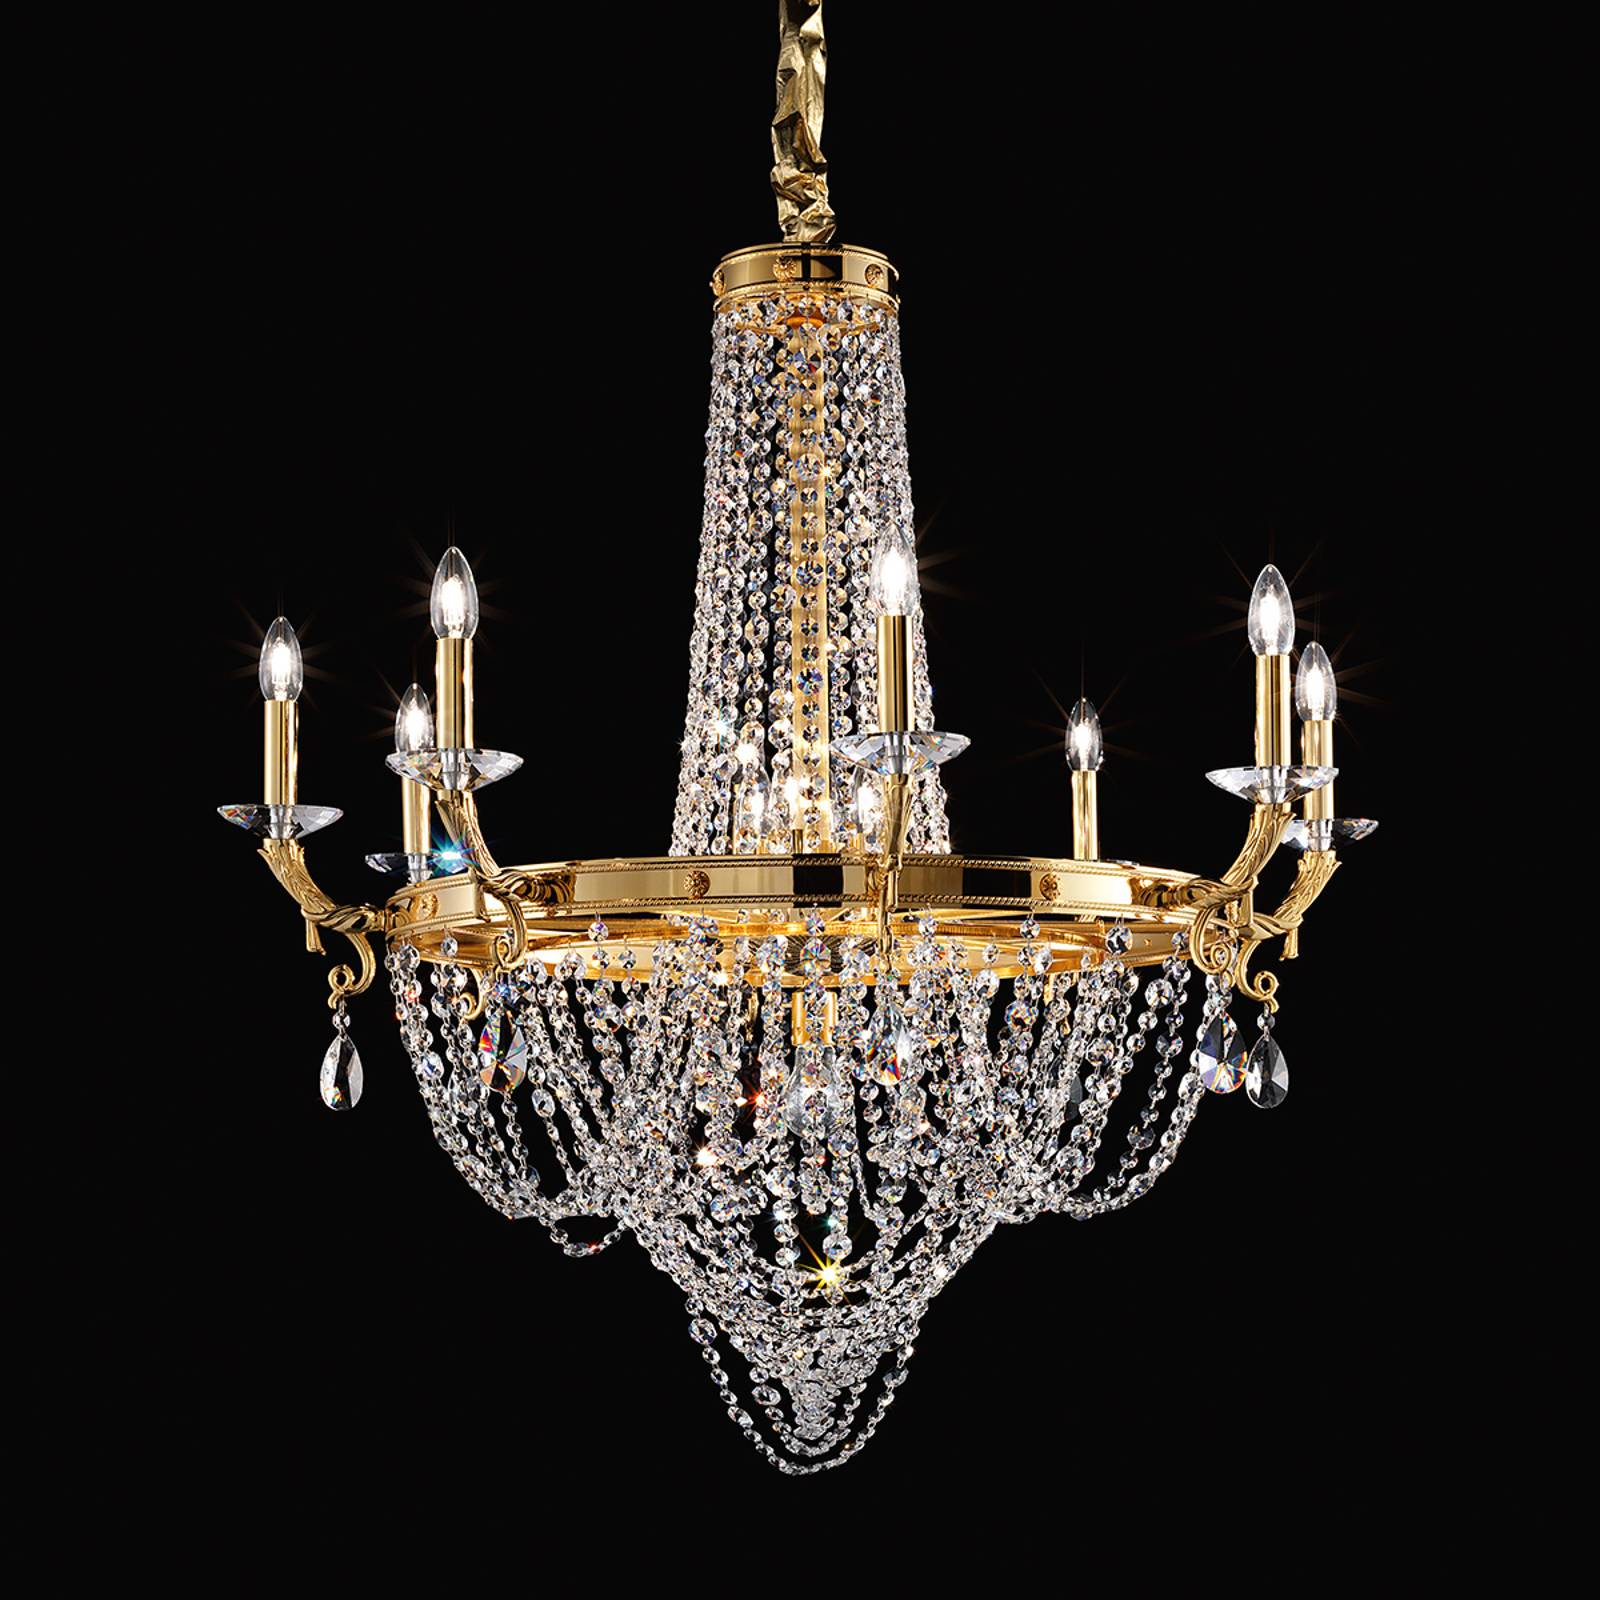 Elisabetta crystal chandelier made of brass from Masiero